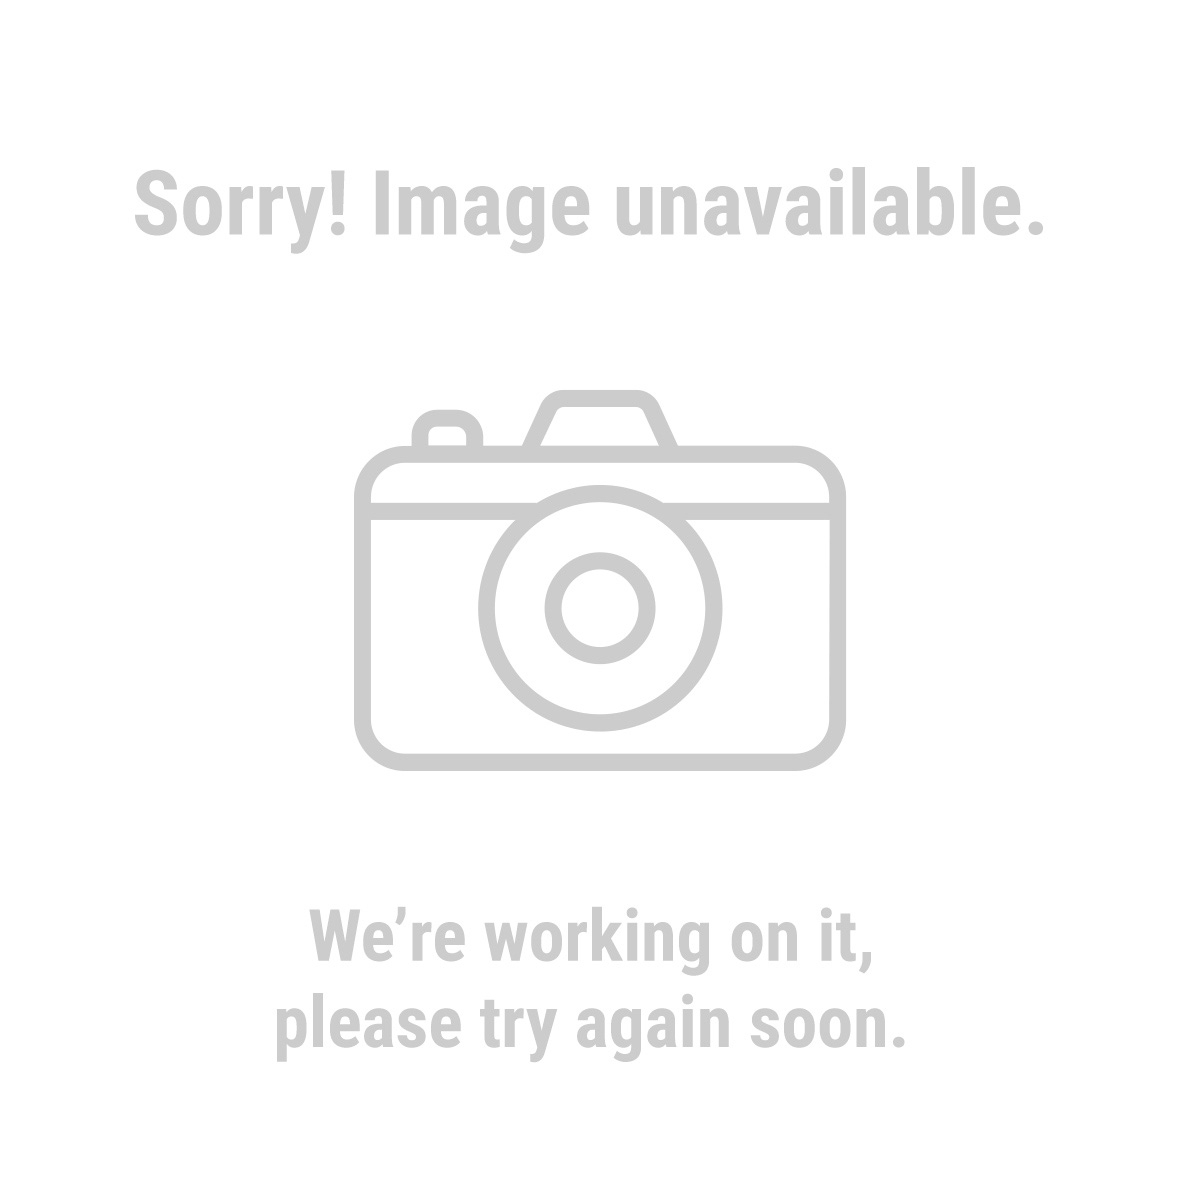 Drill Master 35837 29 Piece Brad Point Wood Drill Bit Set